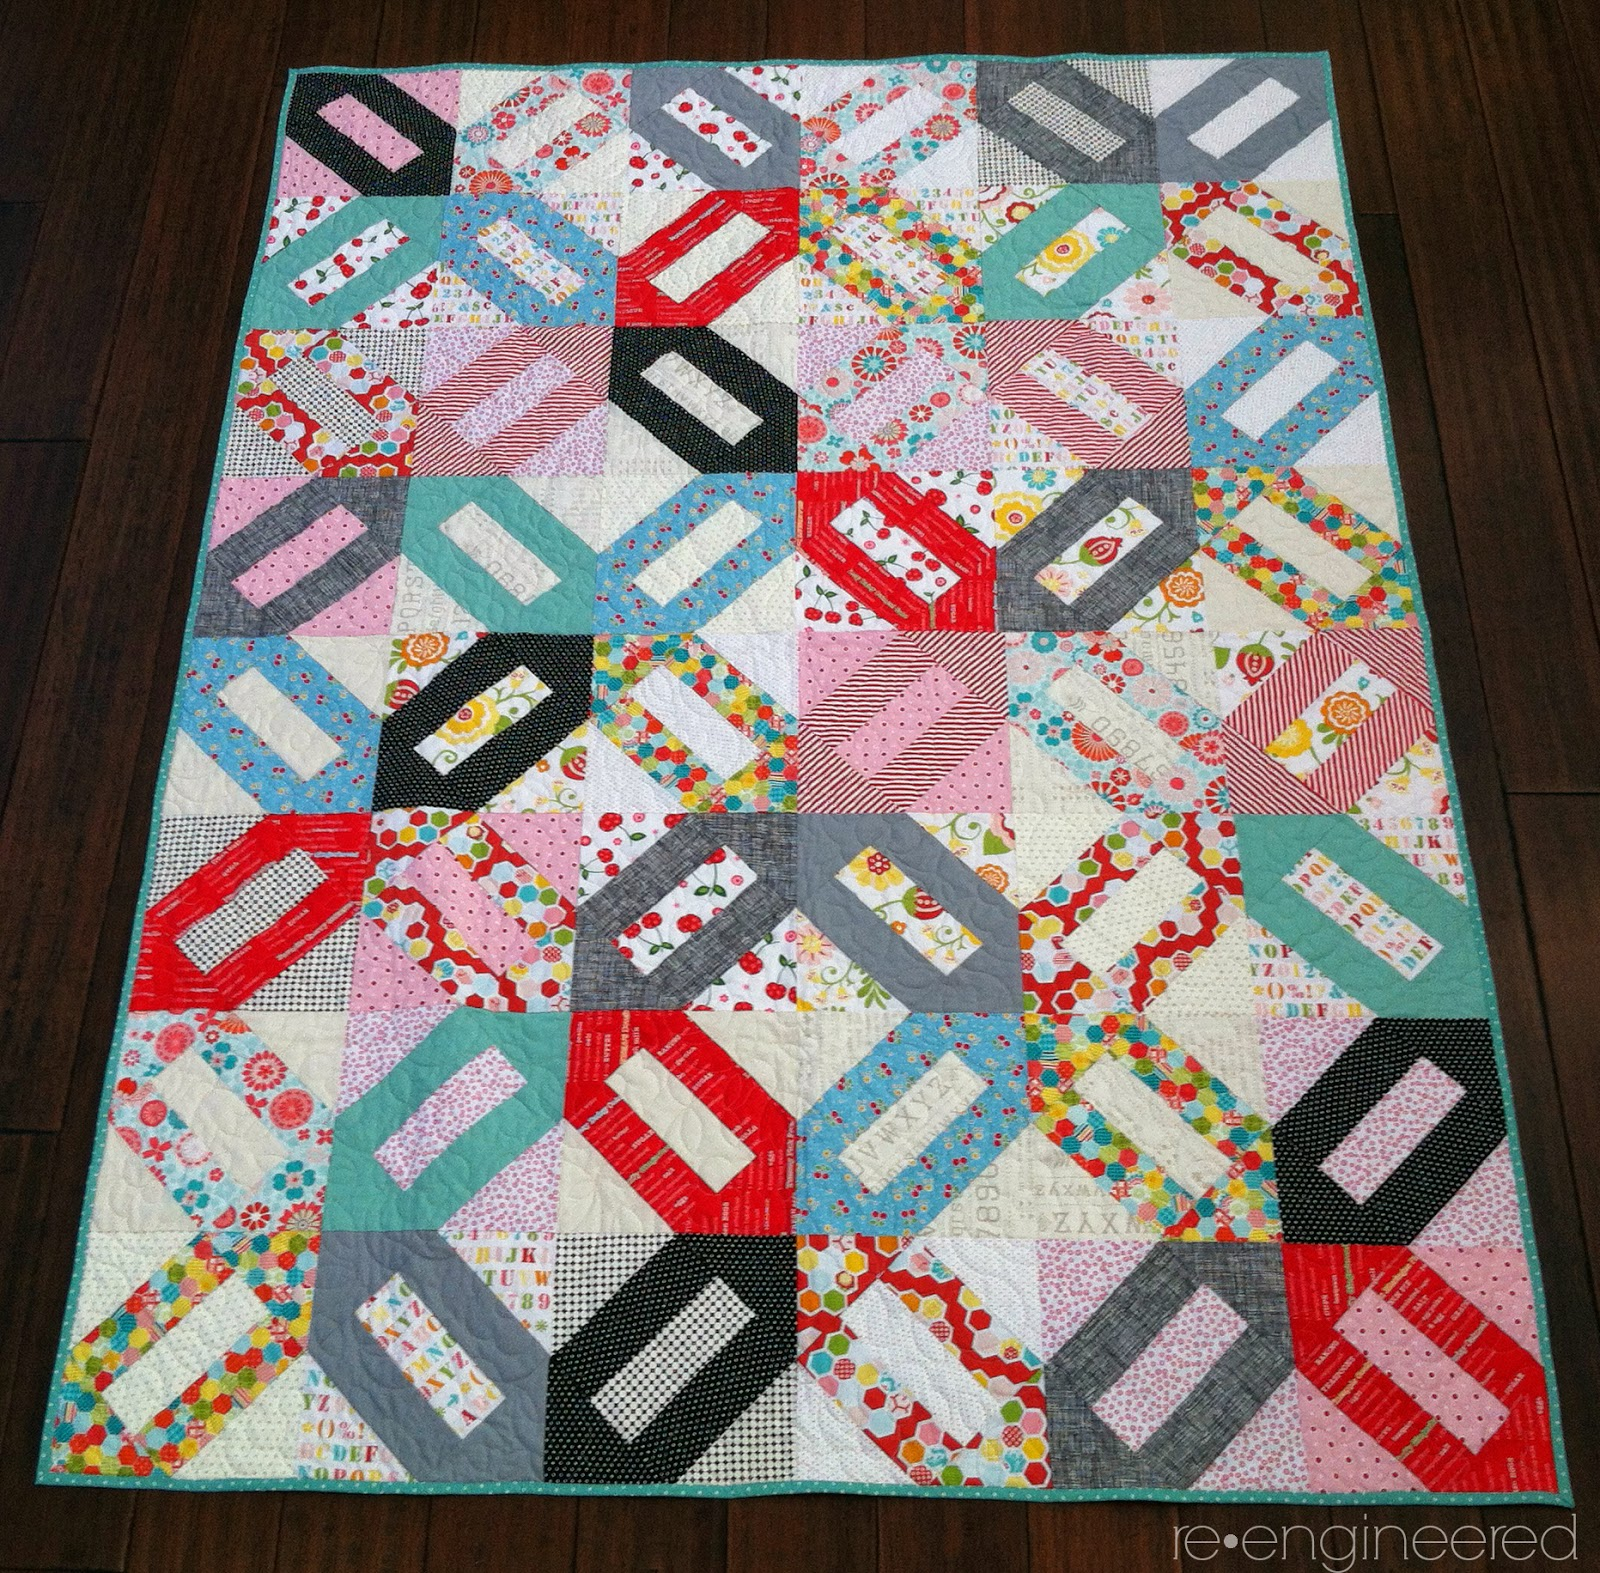 http://www.re-engineered.blogspot.com/2014/05/bloggers-choice-bundle-quilt-finished.html